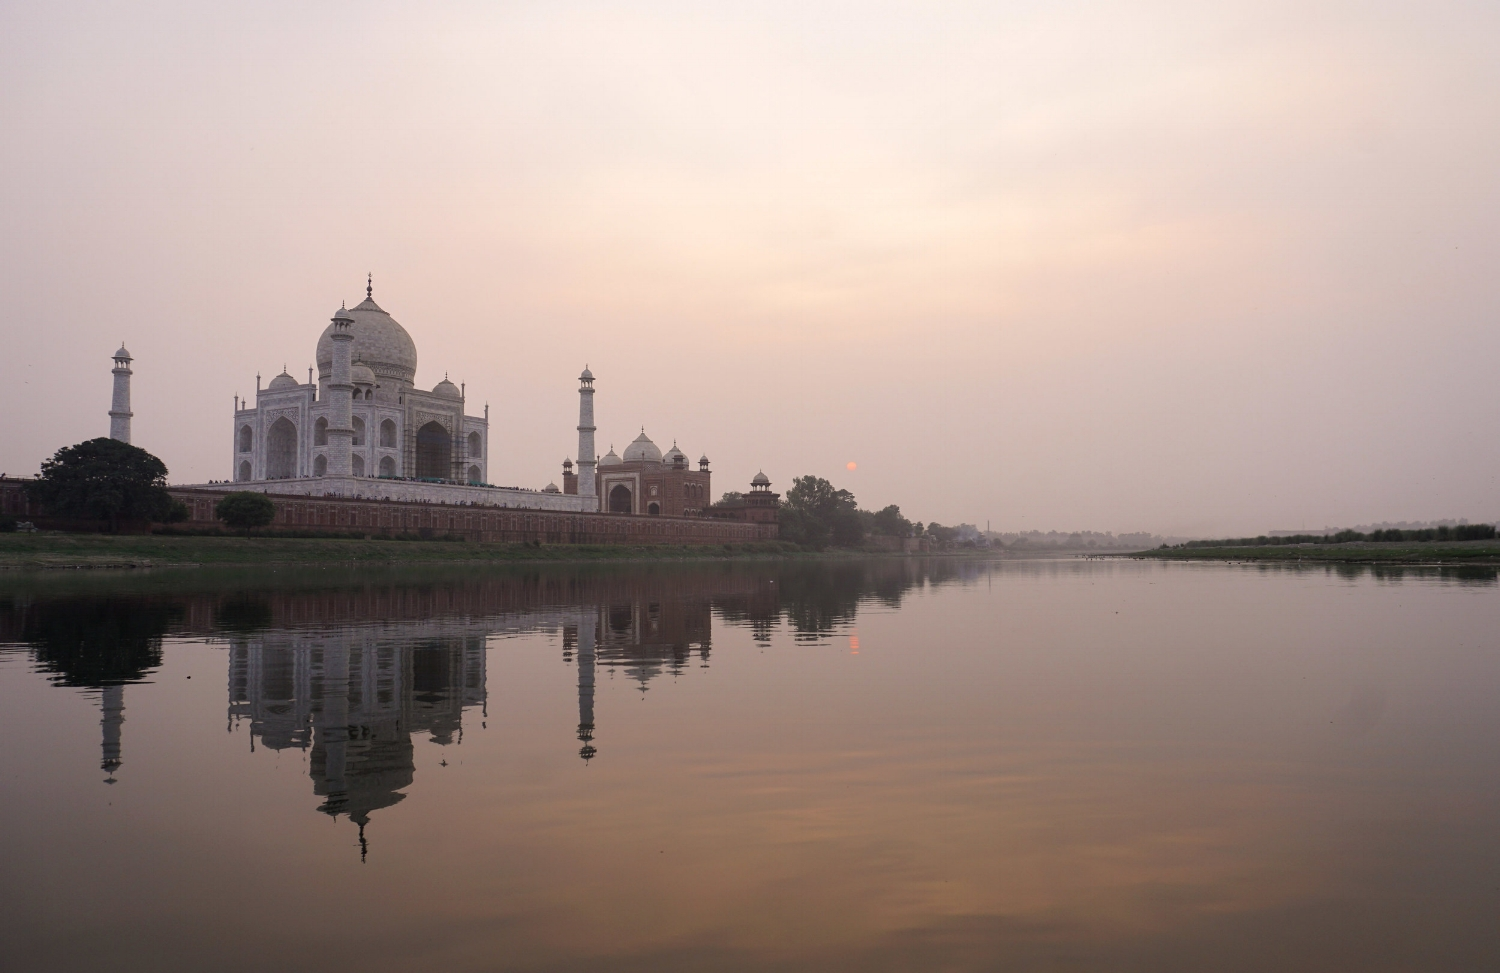 curio.trips.india.agra.taj.mahal.sunset.jpg